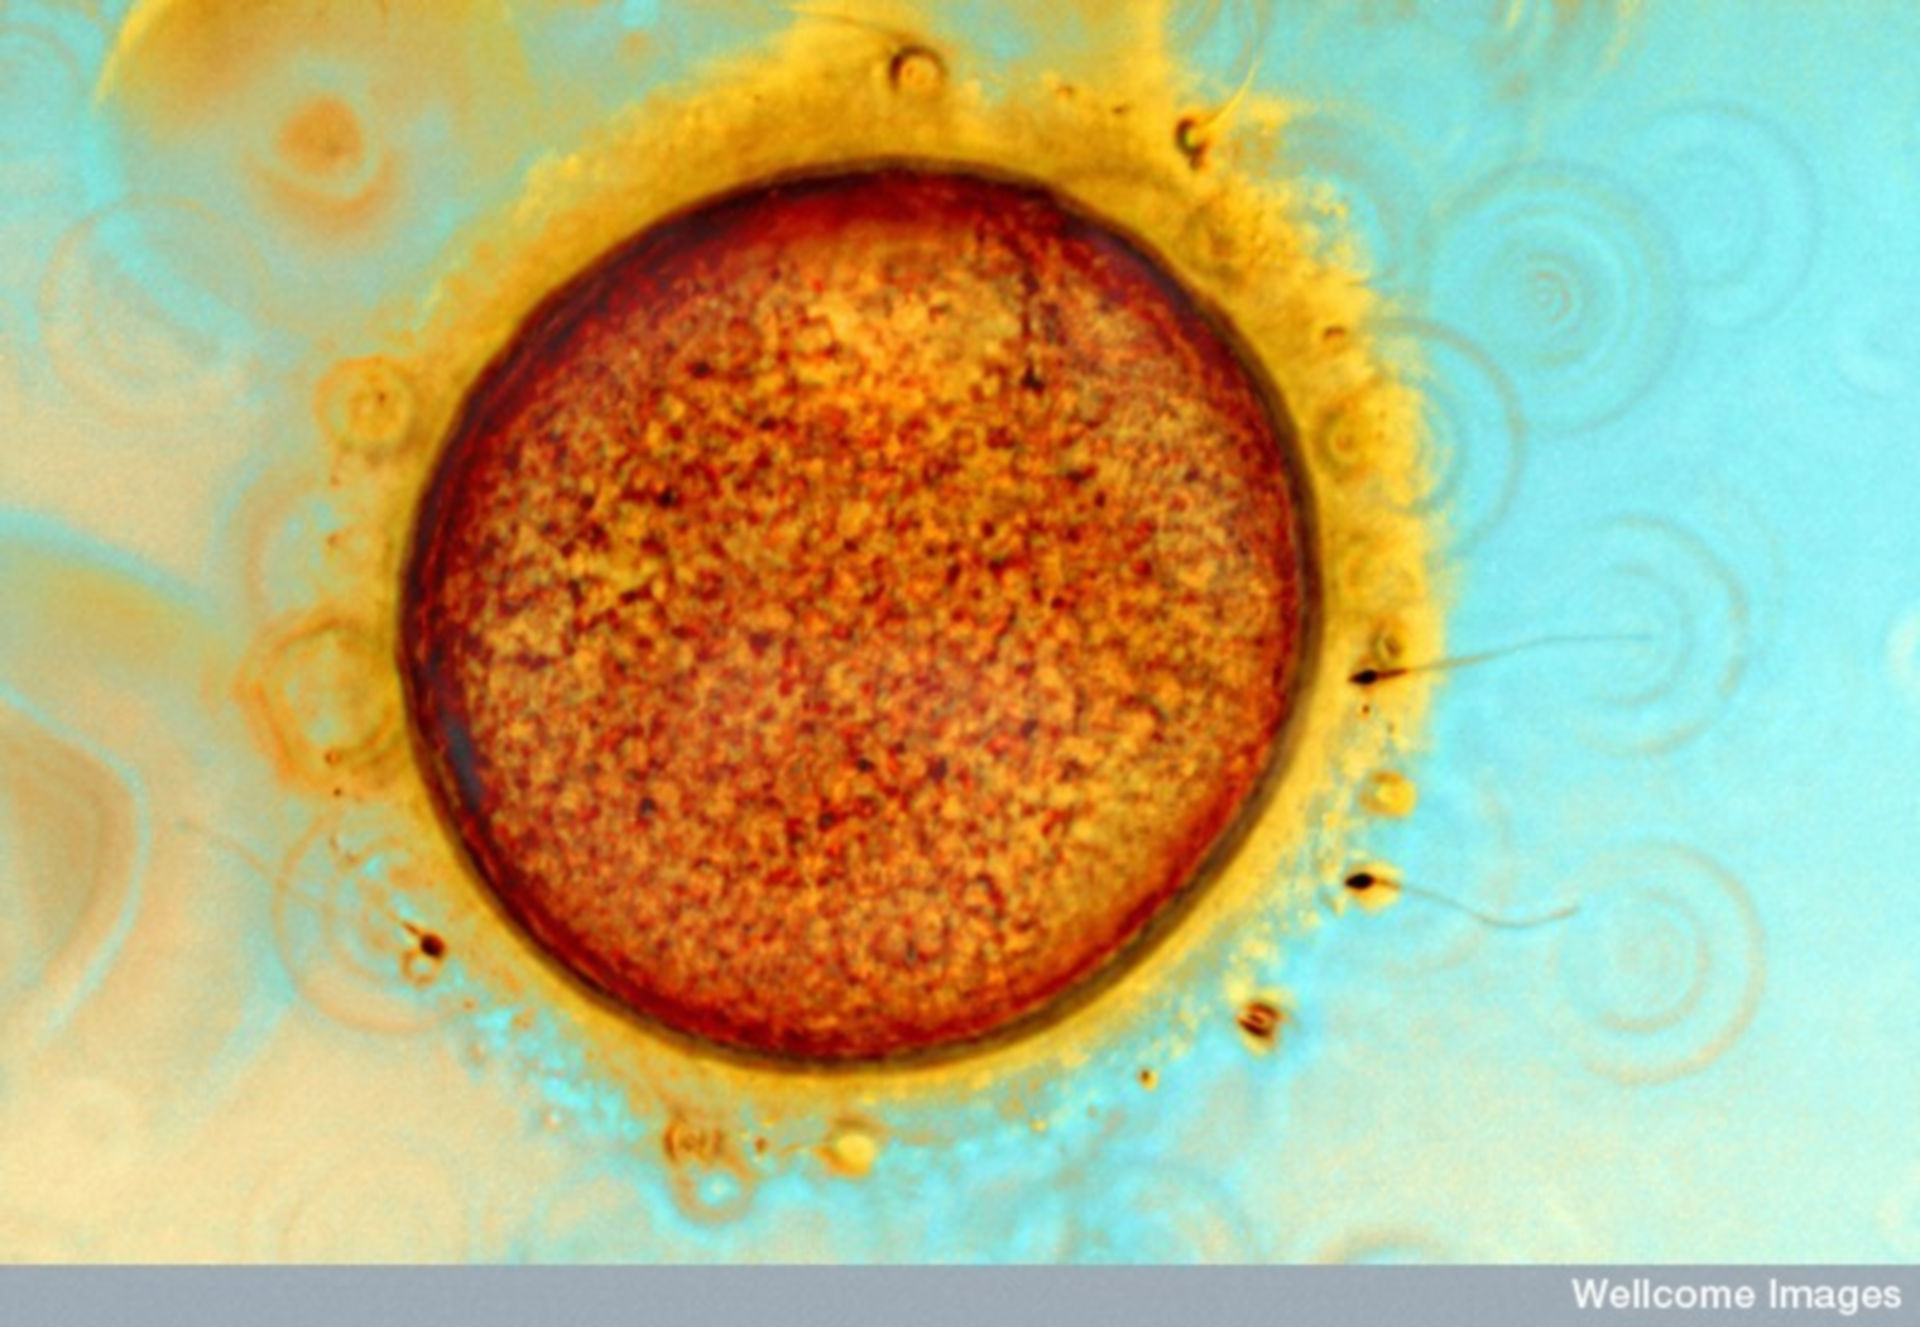 Egg and Sperm! Image of the Week - May 7, 2018 - CIL:39092 - http://cellimagelibrary.org/images/39092